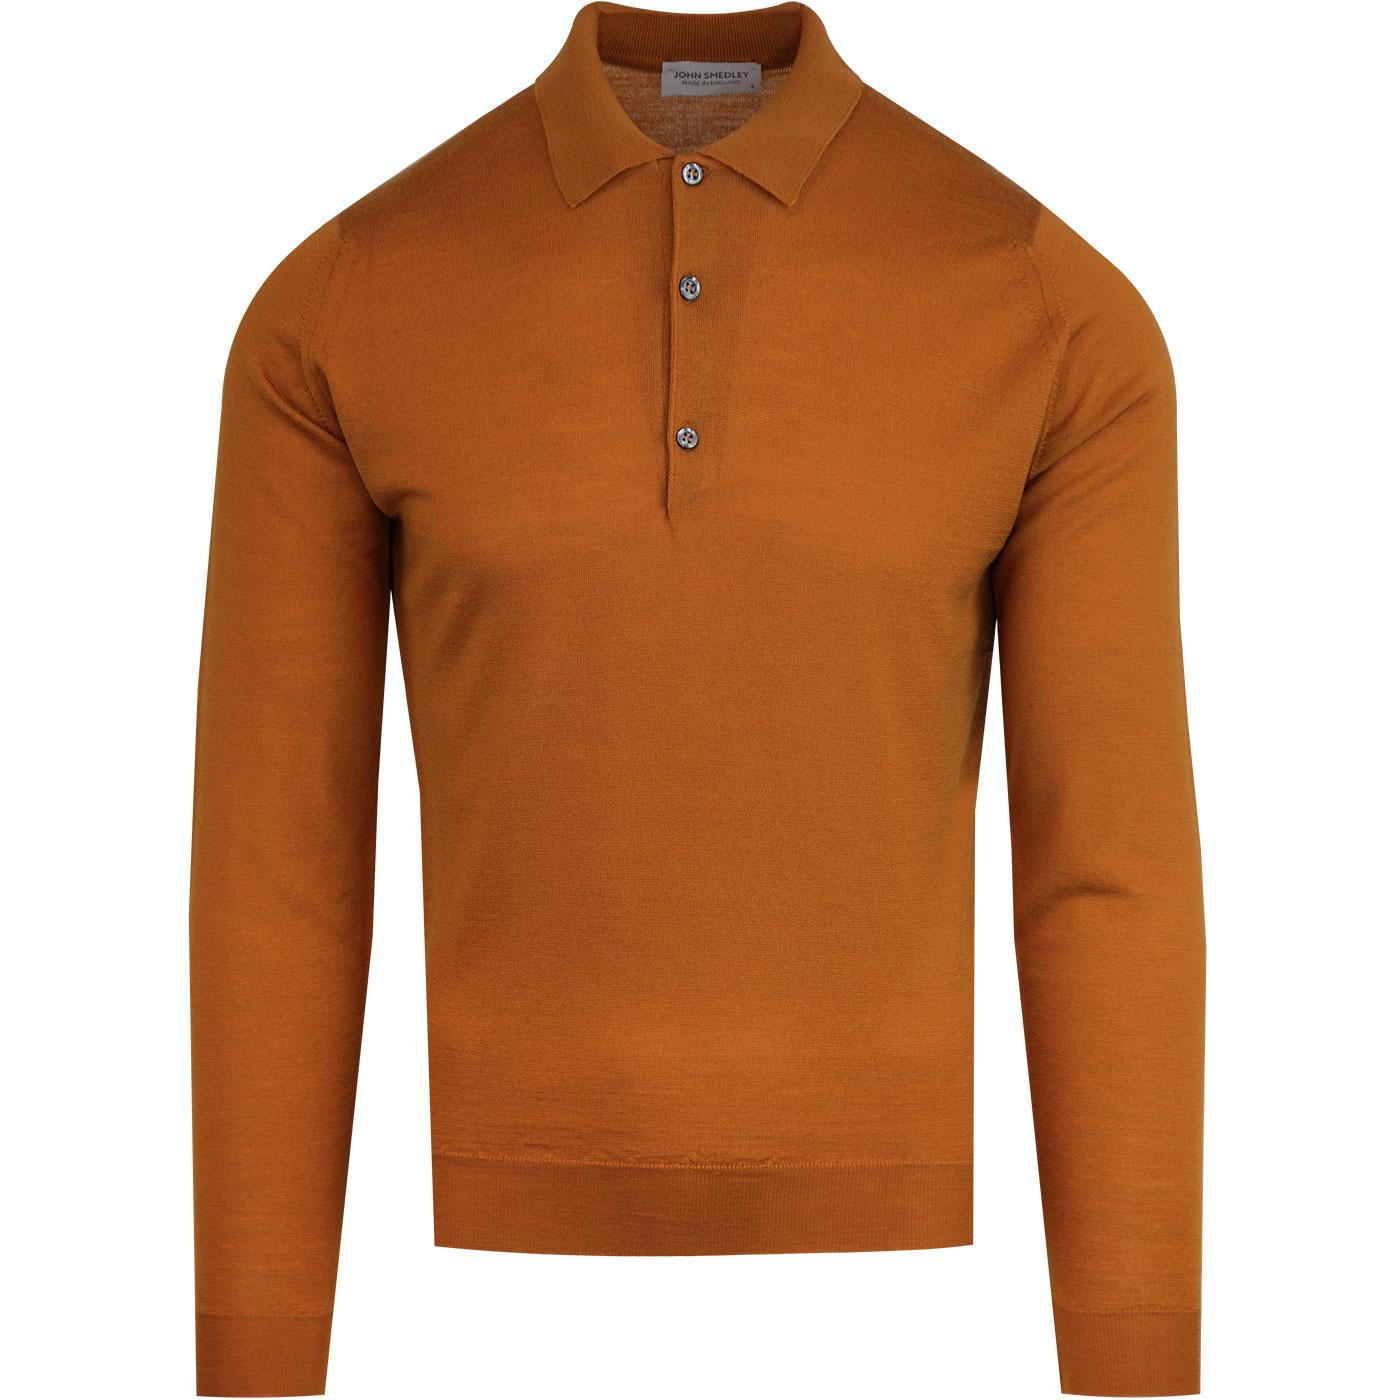 Belper JOHN SMEDLEY Made in England Polo (Bronze)